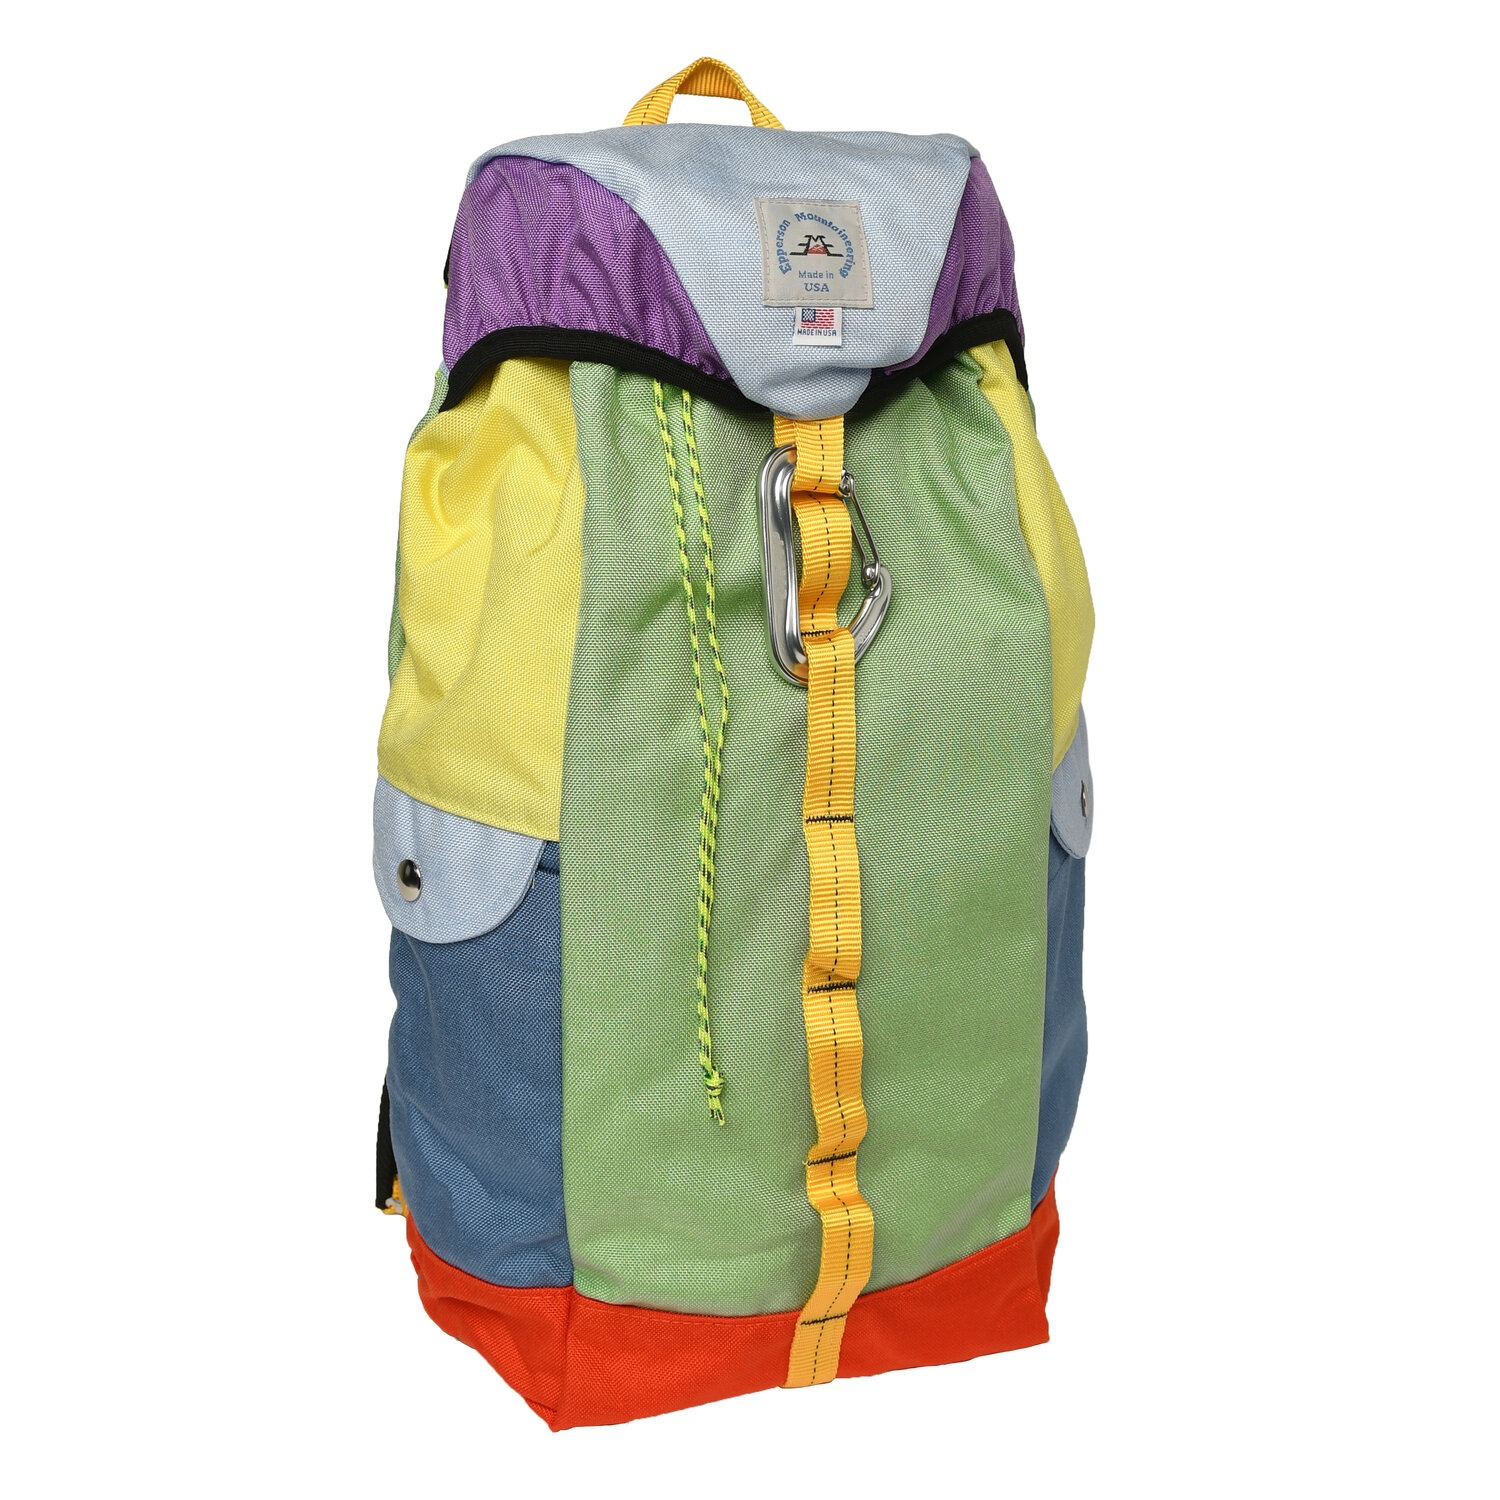 Epperson Mountaineering Medium Climb Backpack